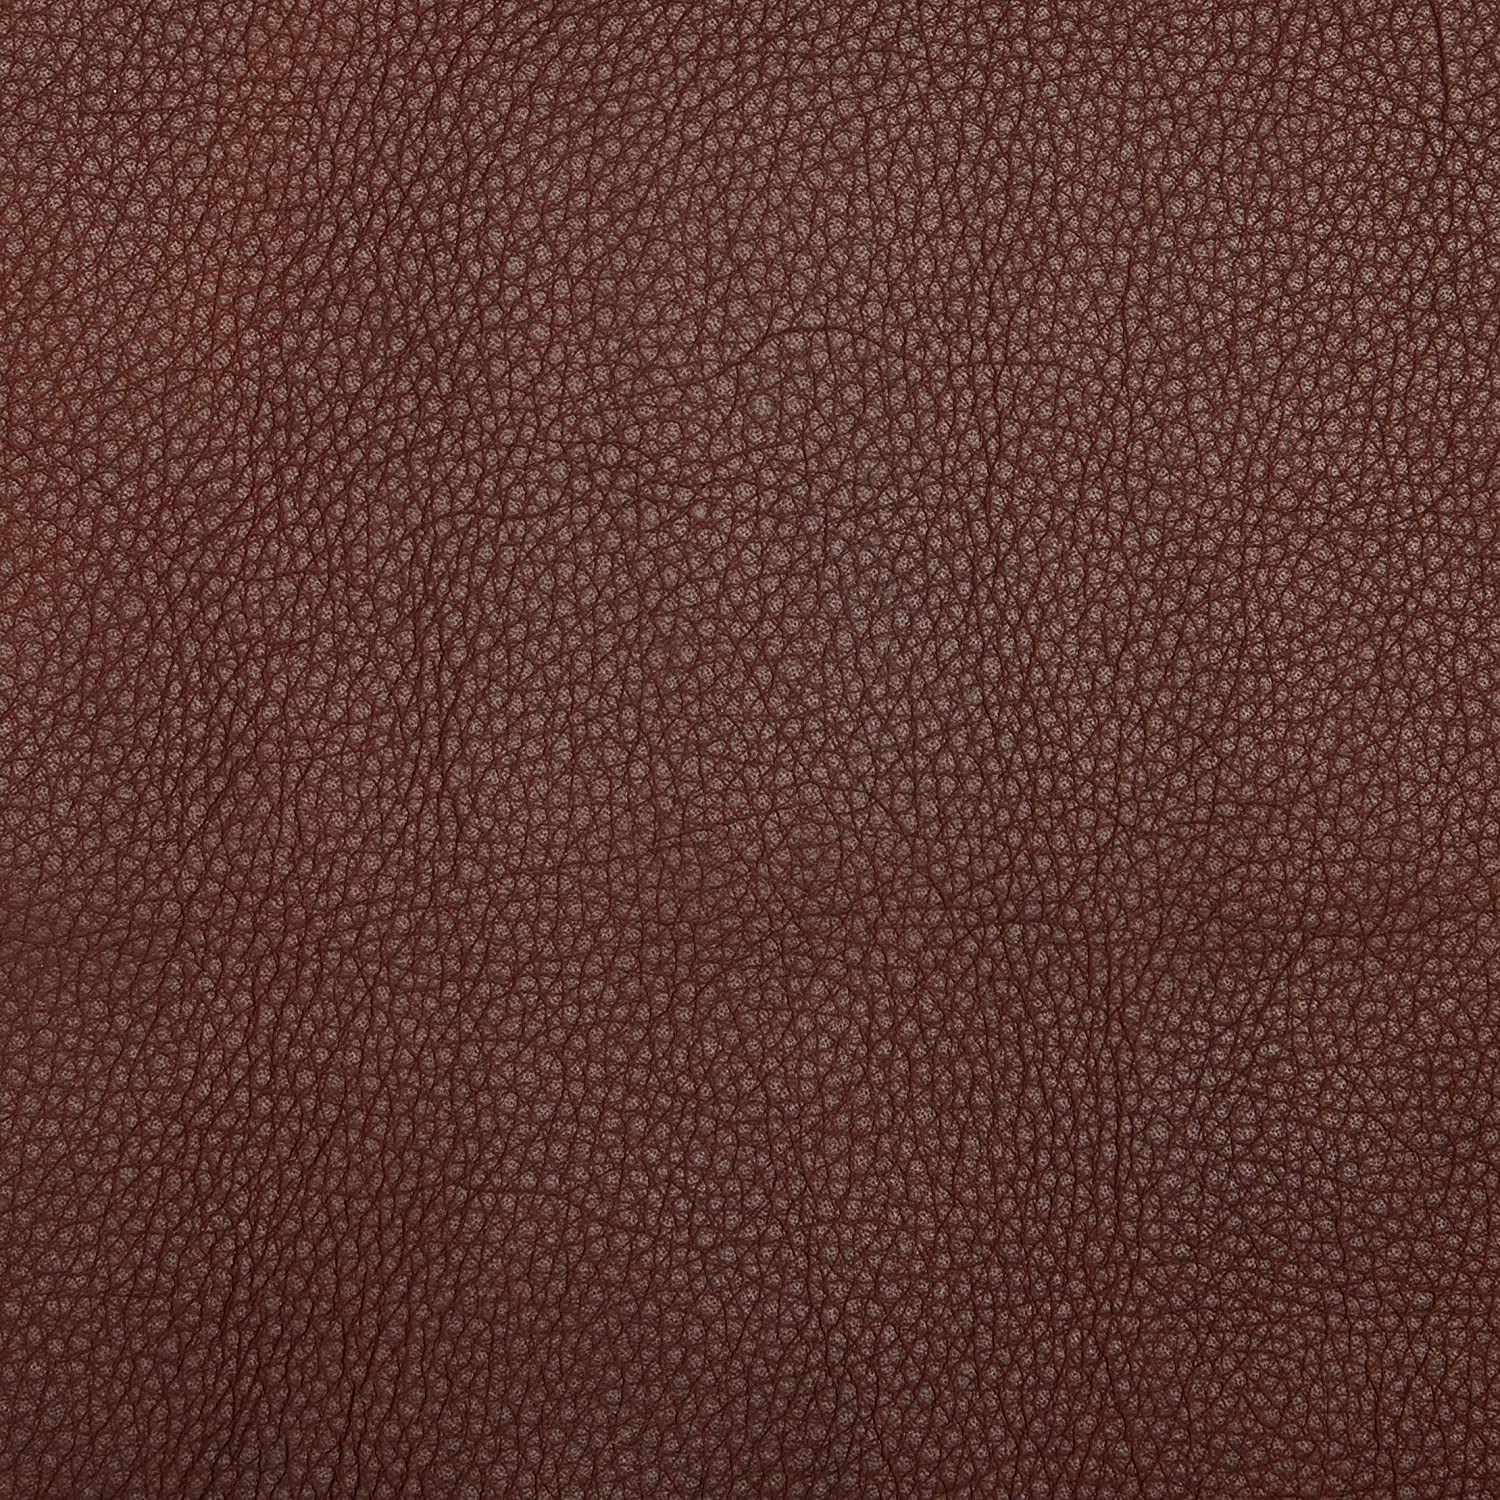 Cork Genuine Leather 12x12 CORK Pale PINK NAVAJO applied to Cowhide for body /& strength Thick 5oz2mm PeggySueAlso\u2122 E5610-17